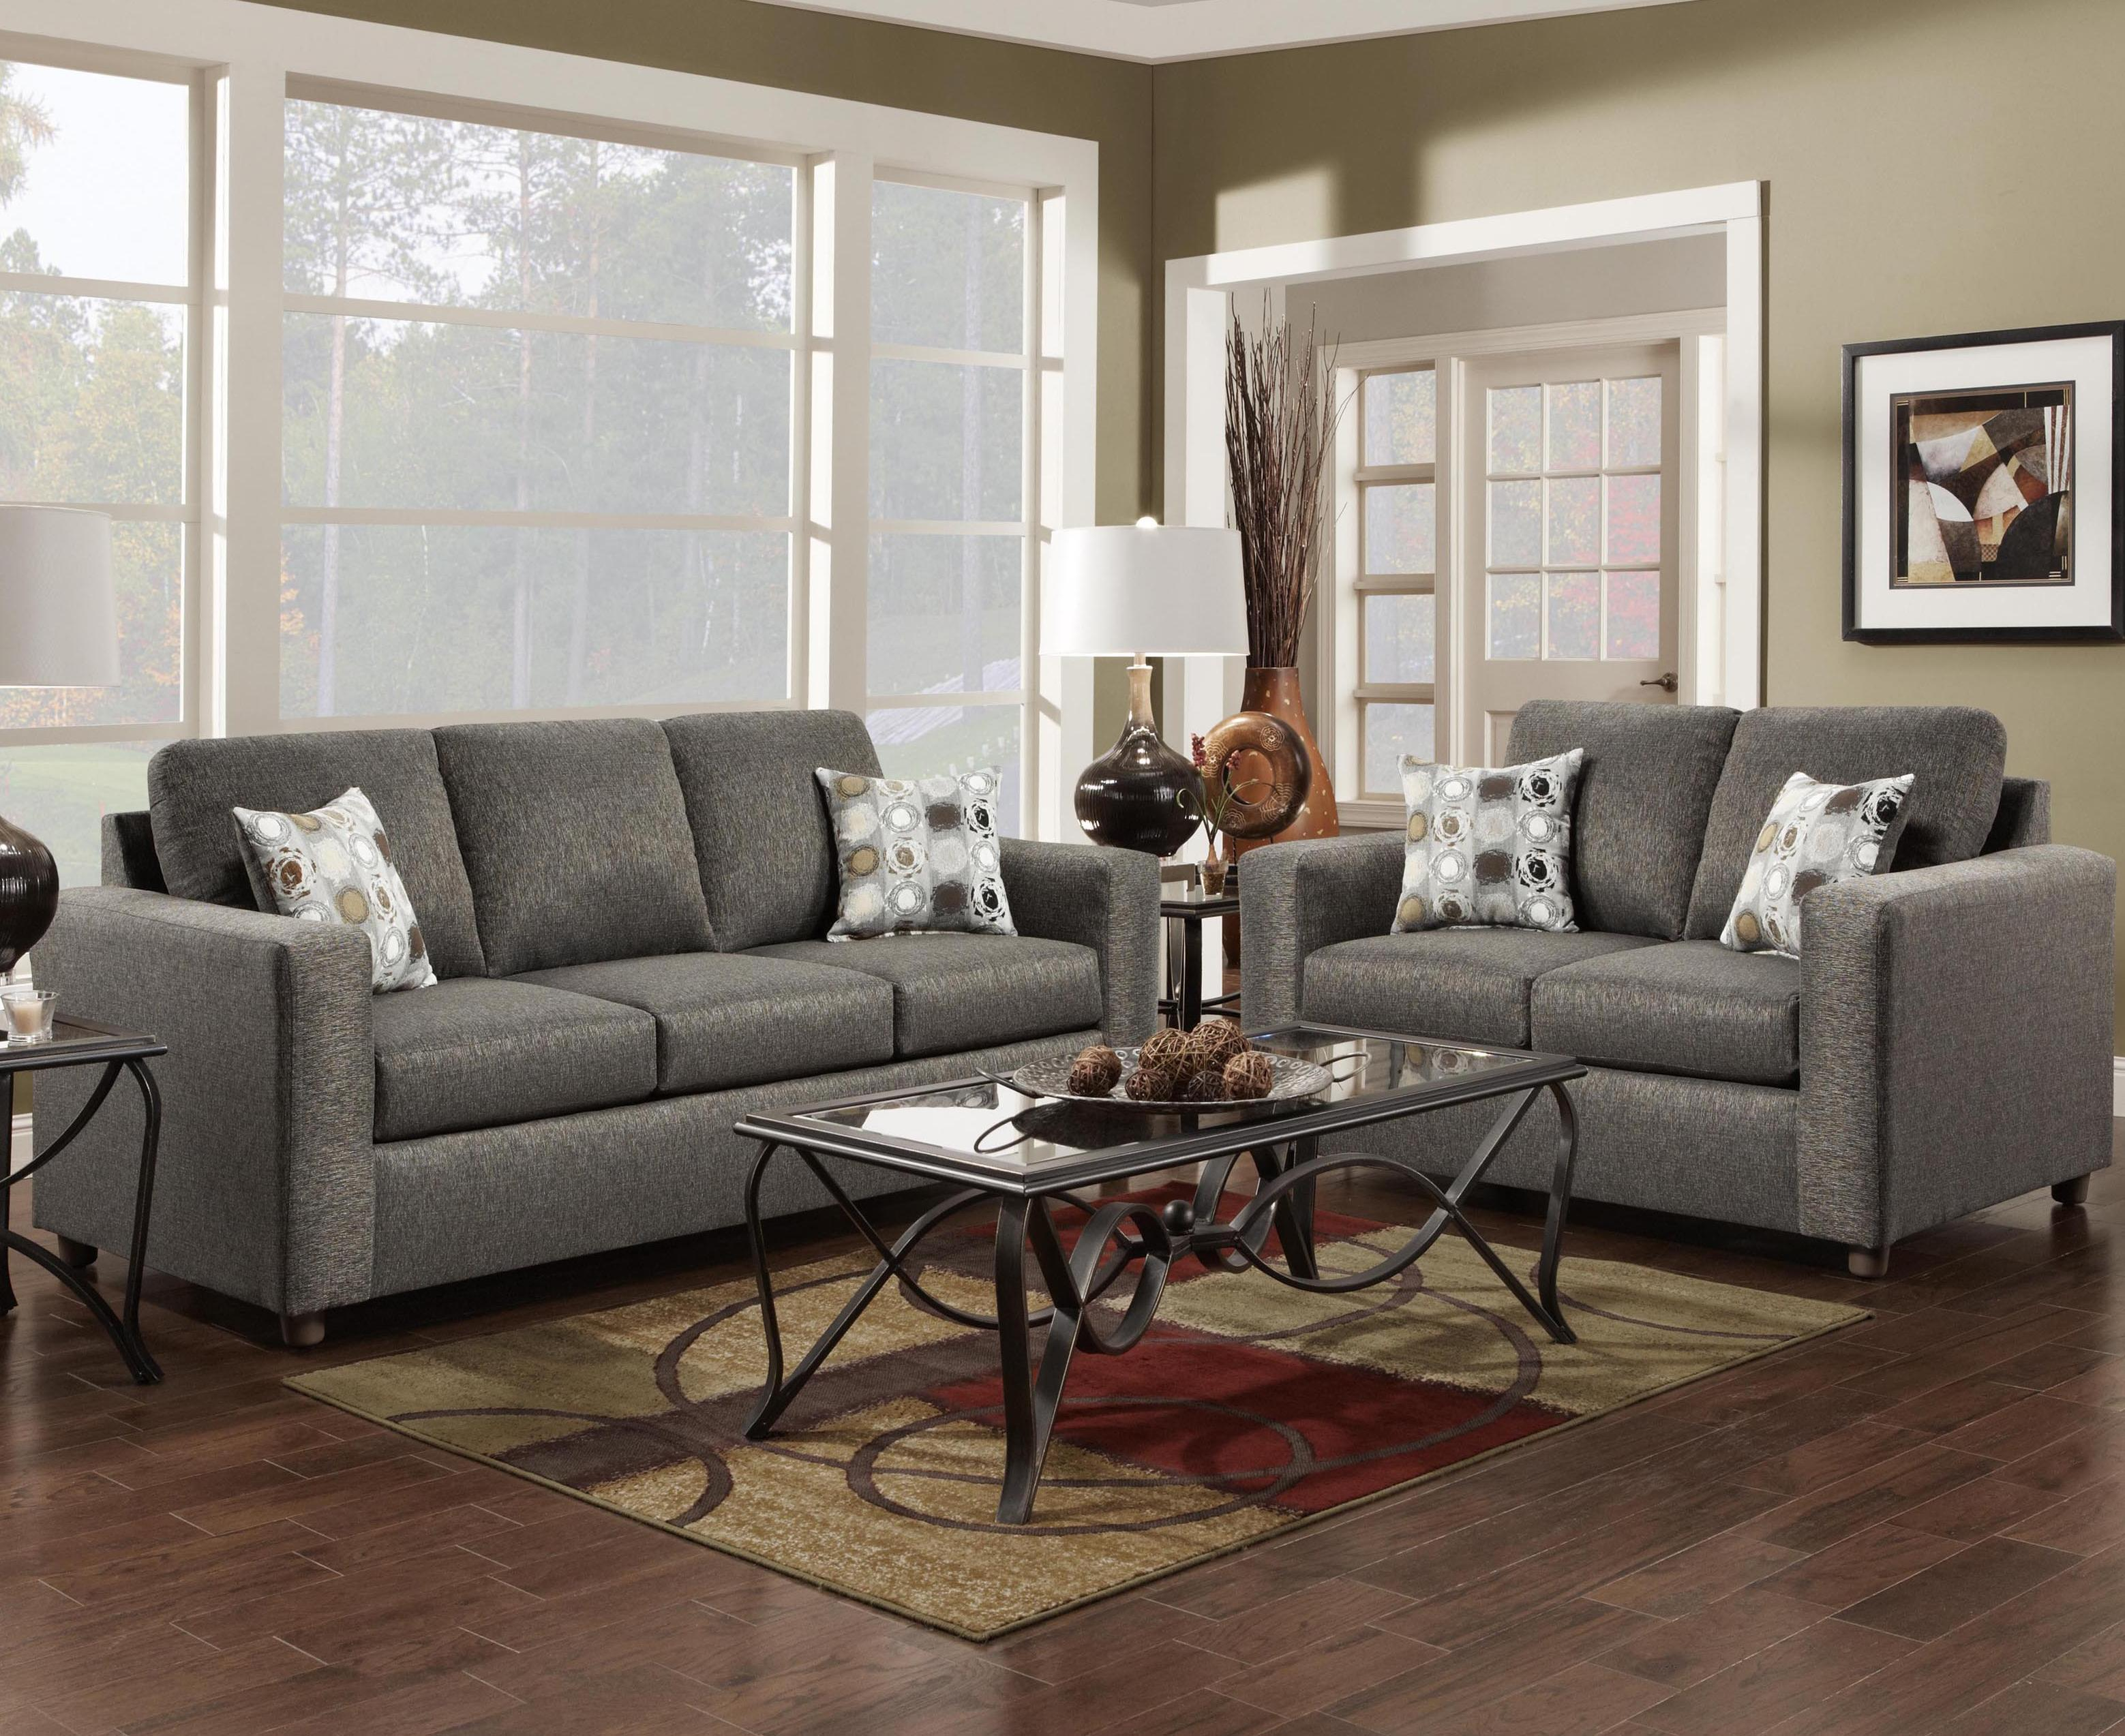 Exciting wilcox furniture for home furniture with wilcox furniture corpus christi